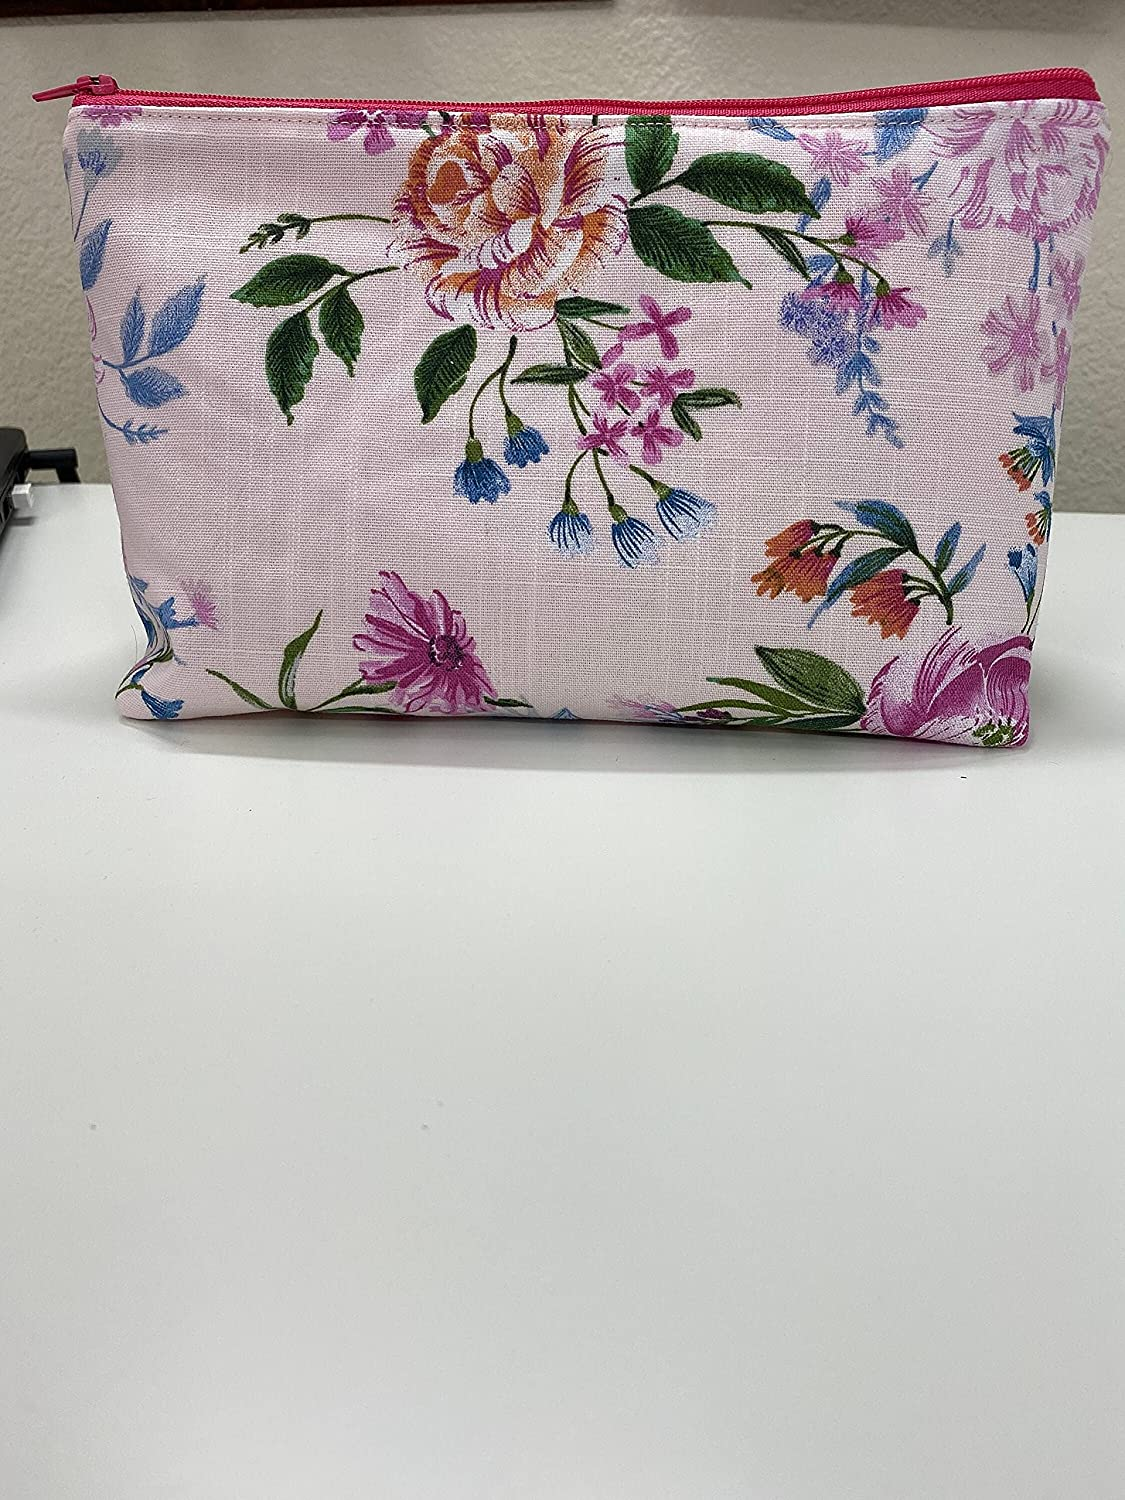 Pink Floral Indefinitely Make up Pencil Up Cosmetic Virginia Beach Mall Bag